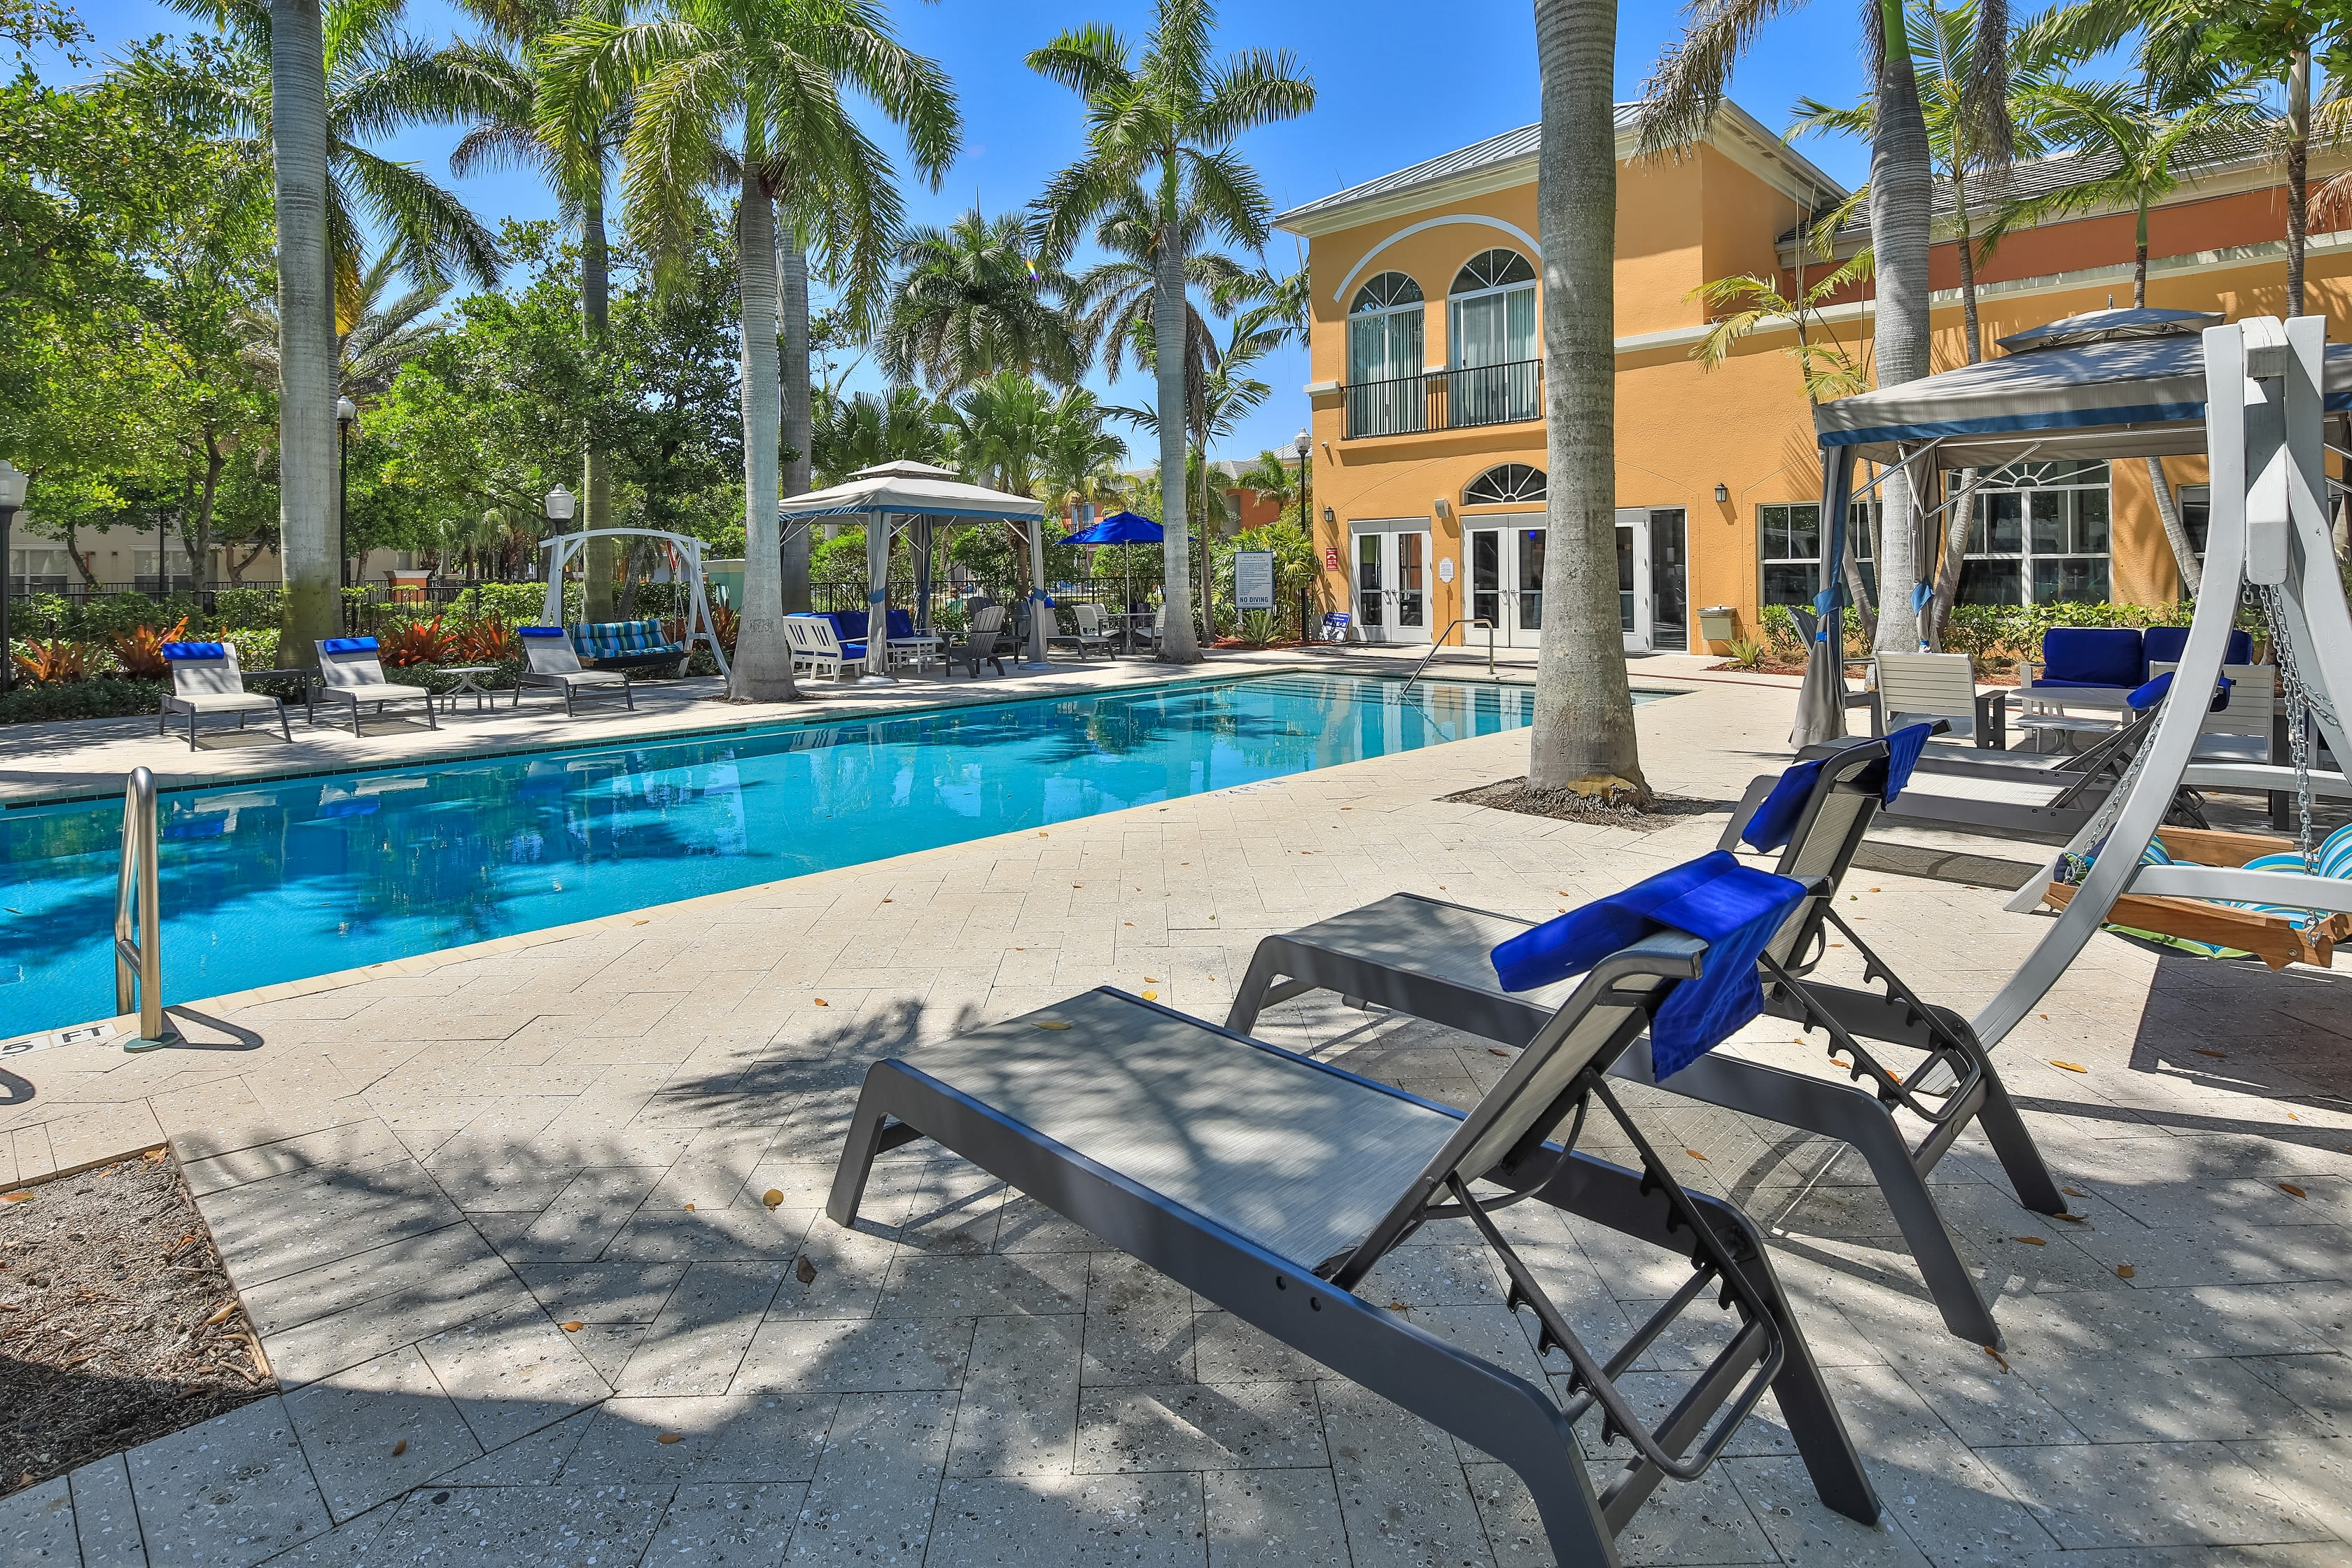 Gorgeous resort style swimming pool surrounded by lounge chairs at The Pearl in Ft Lauderdale, Florida